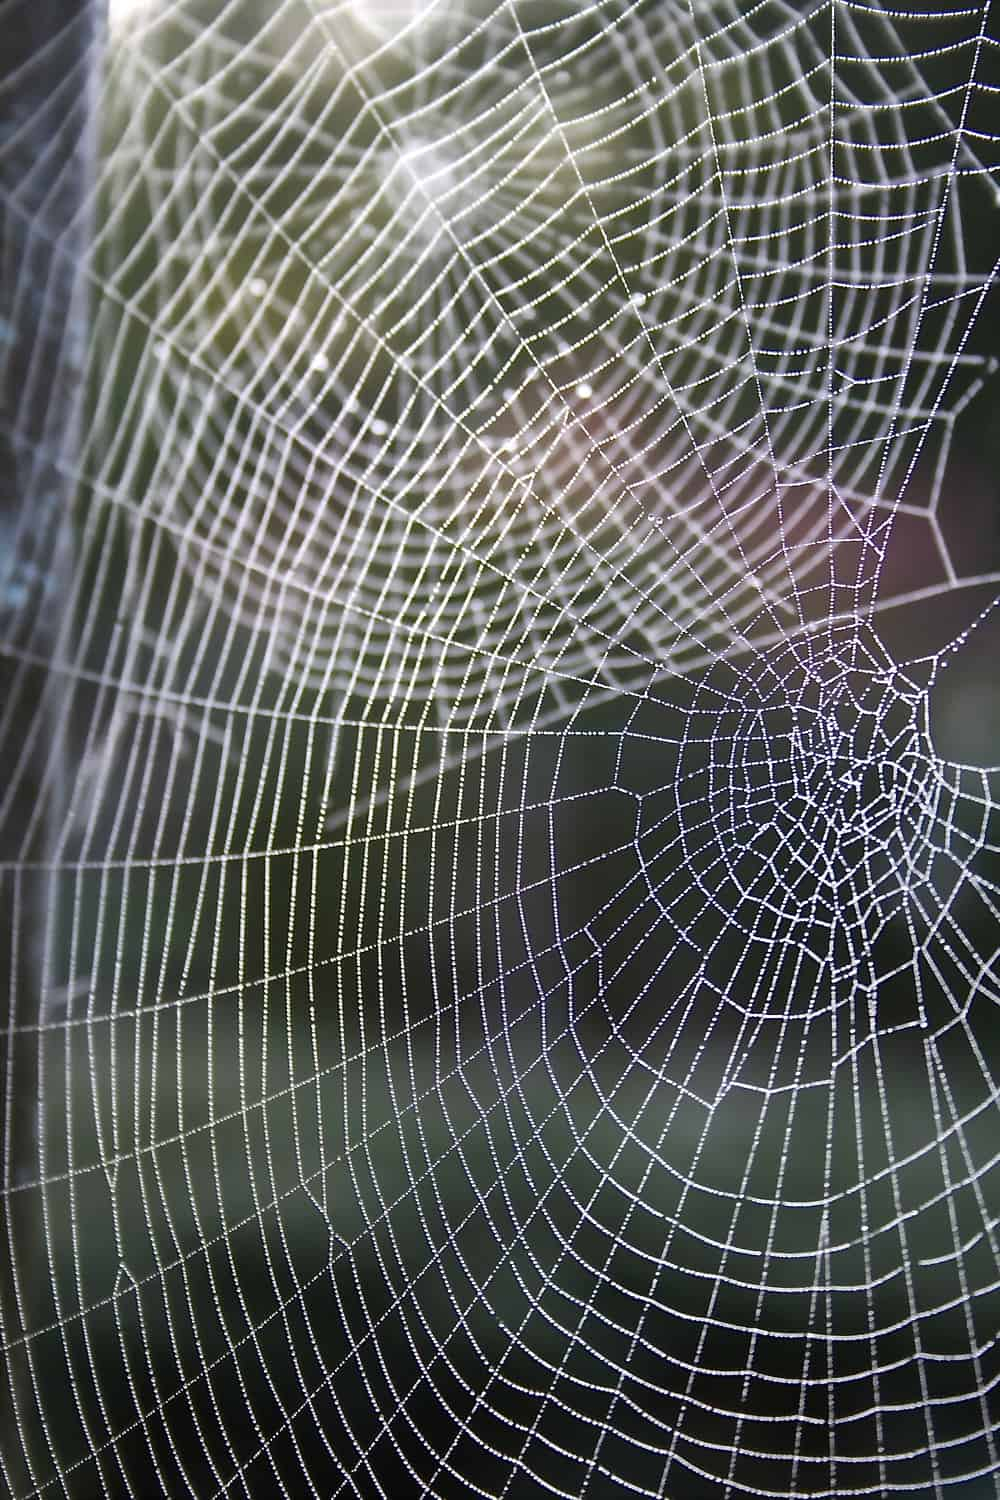 howto get rid of spiders in garden